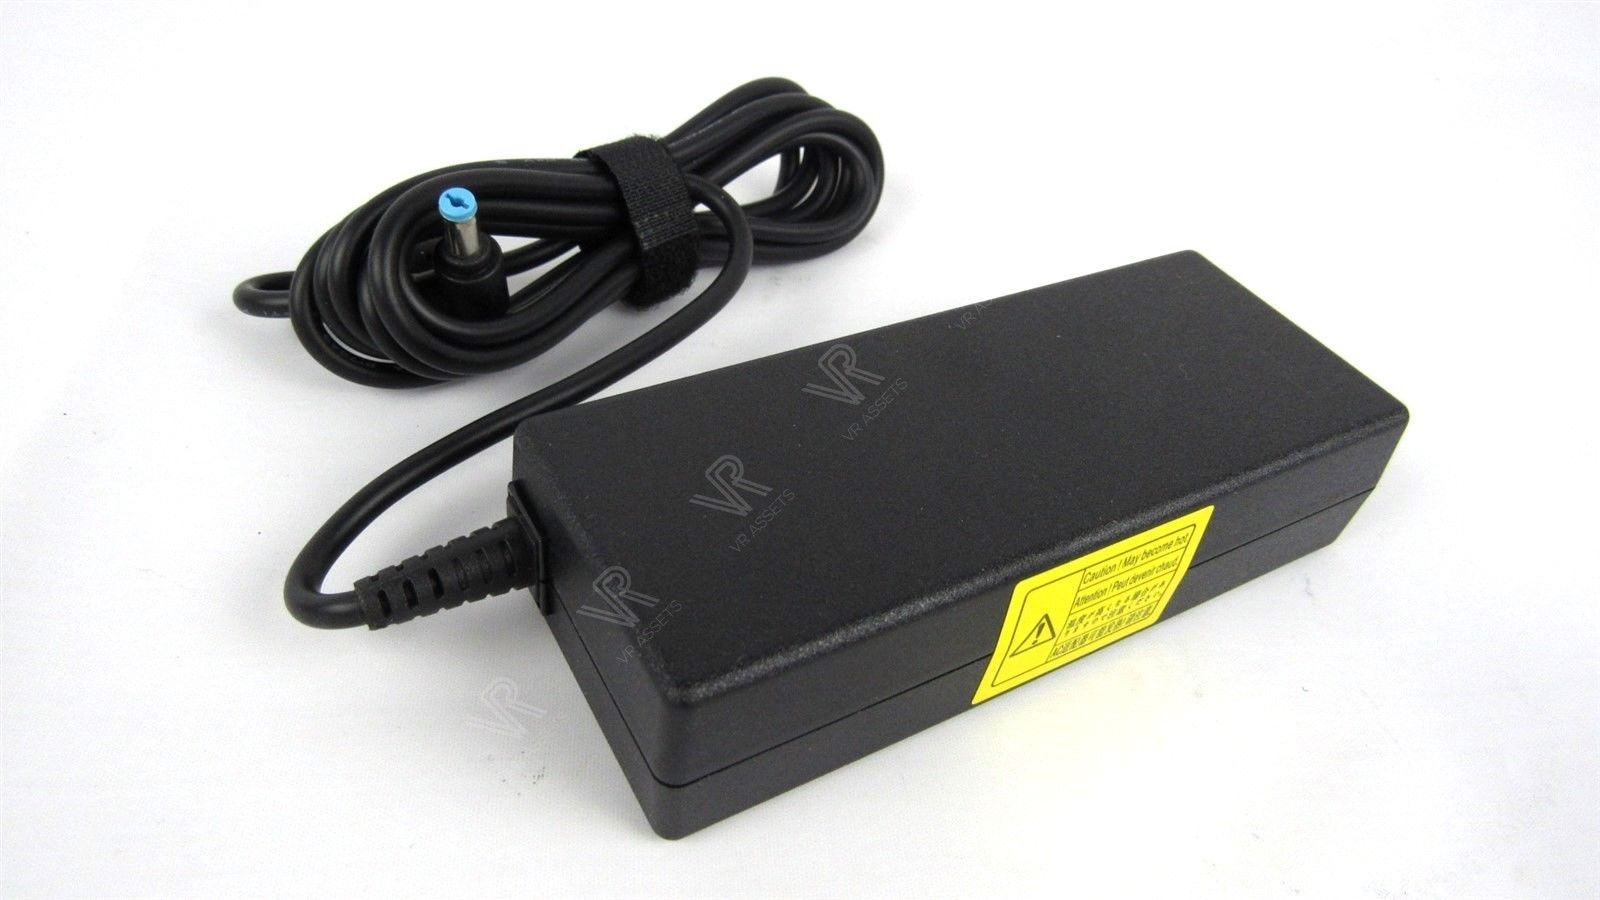 Acer Aspire 7750G-6854 Chicony Notebook AC Adapter 90W 19V A10-090P3A